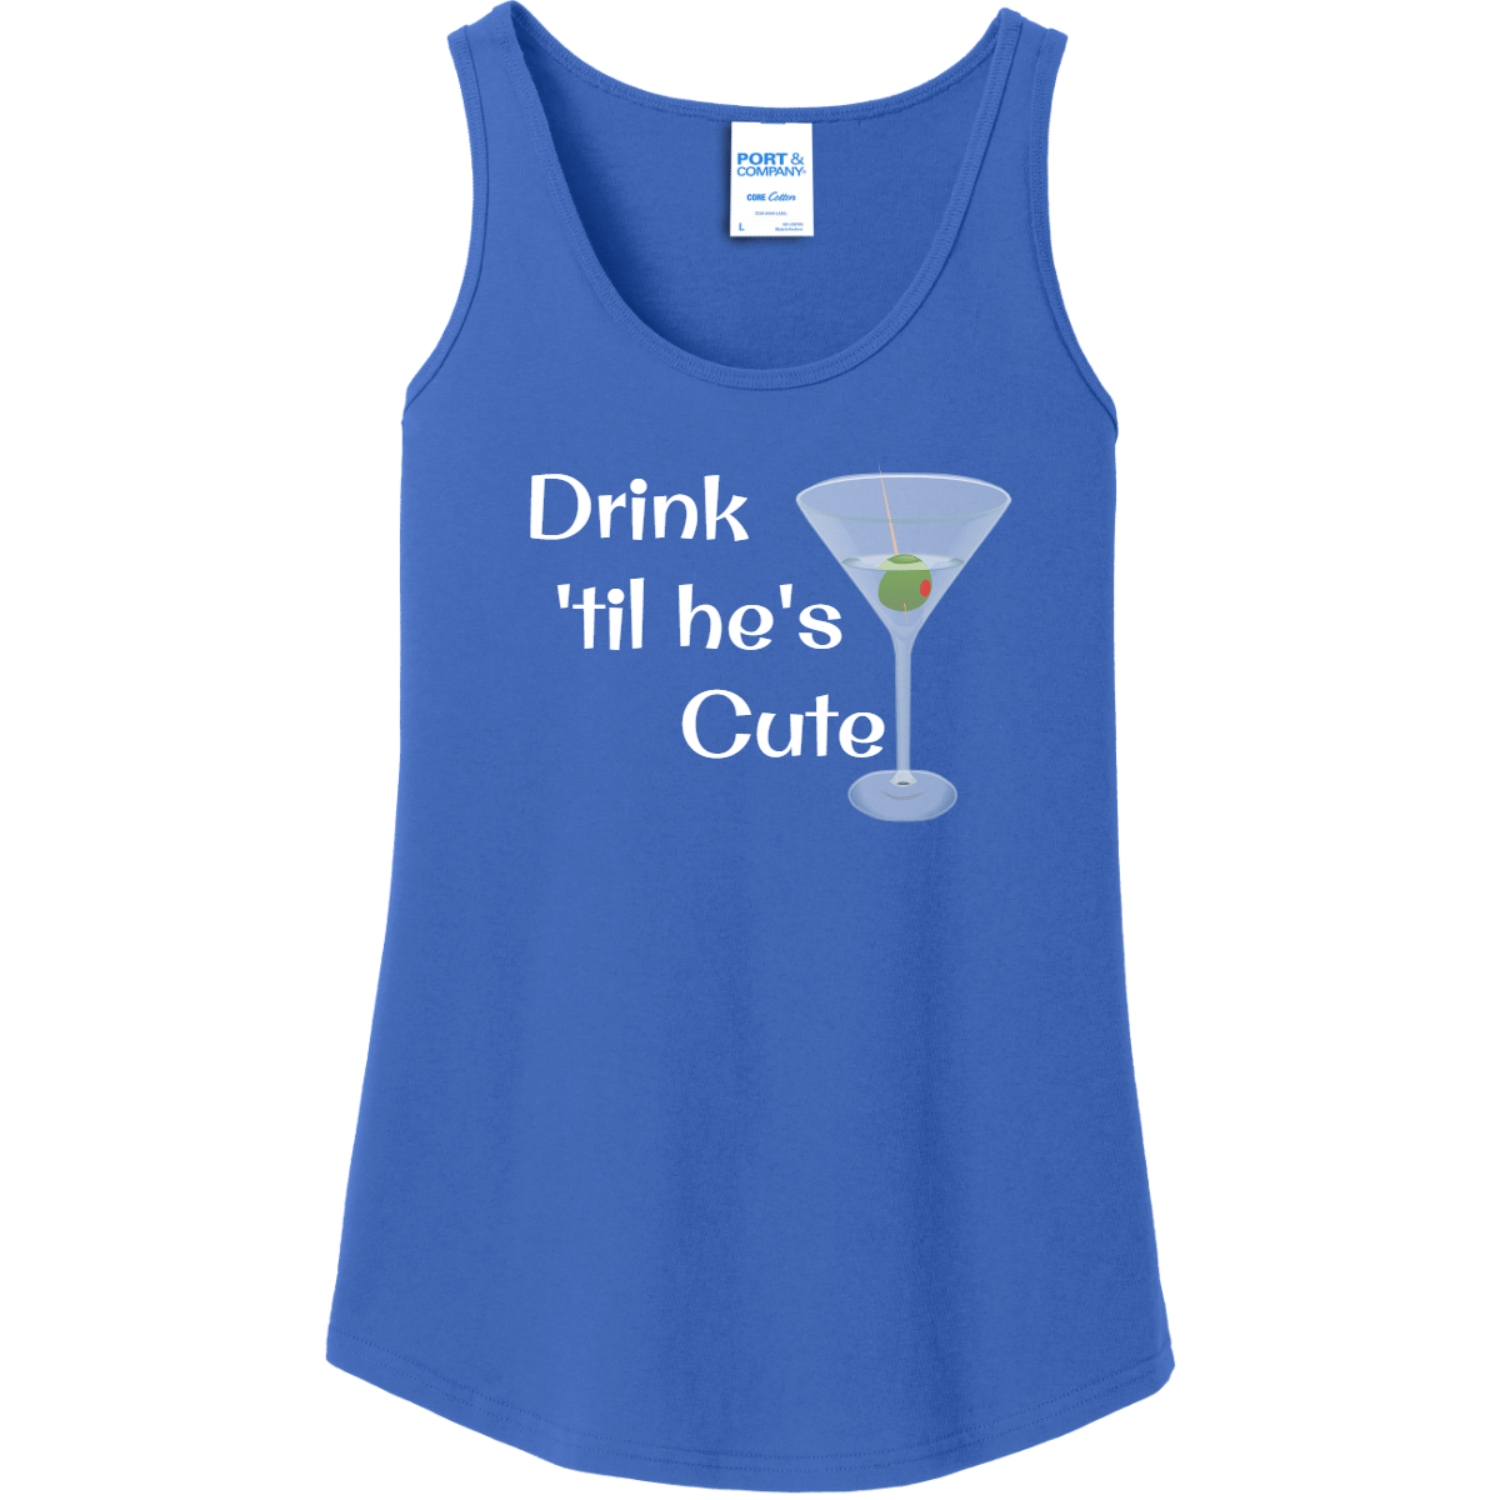 Drink 'Til He's Cute Tank Top for Women Royal Port And Company Ladies Tank Top LPC54TT